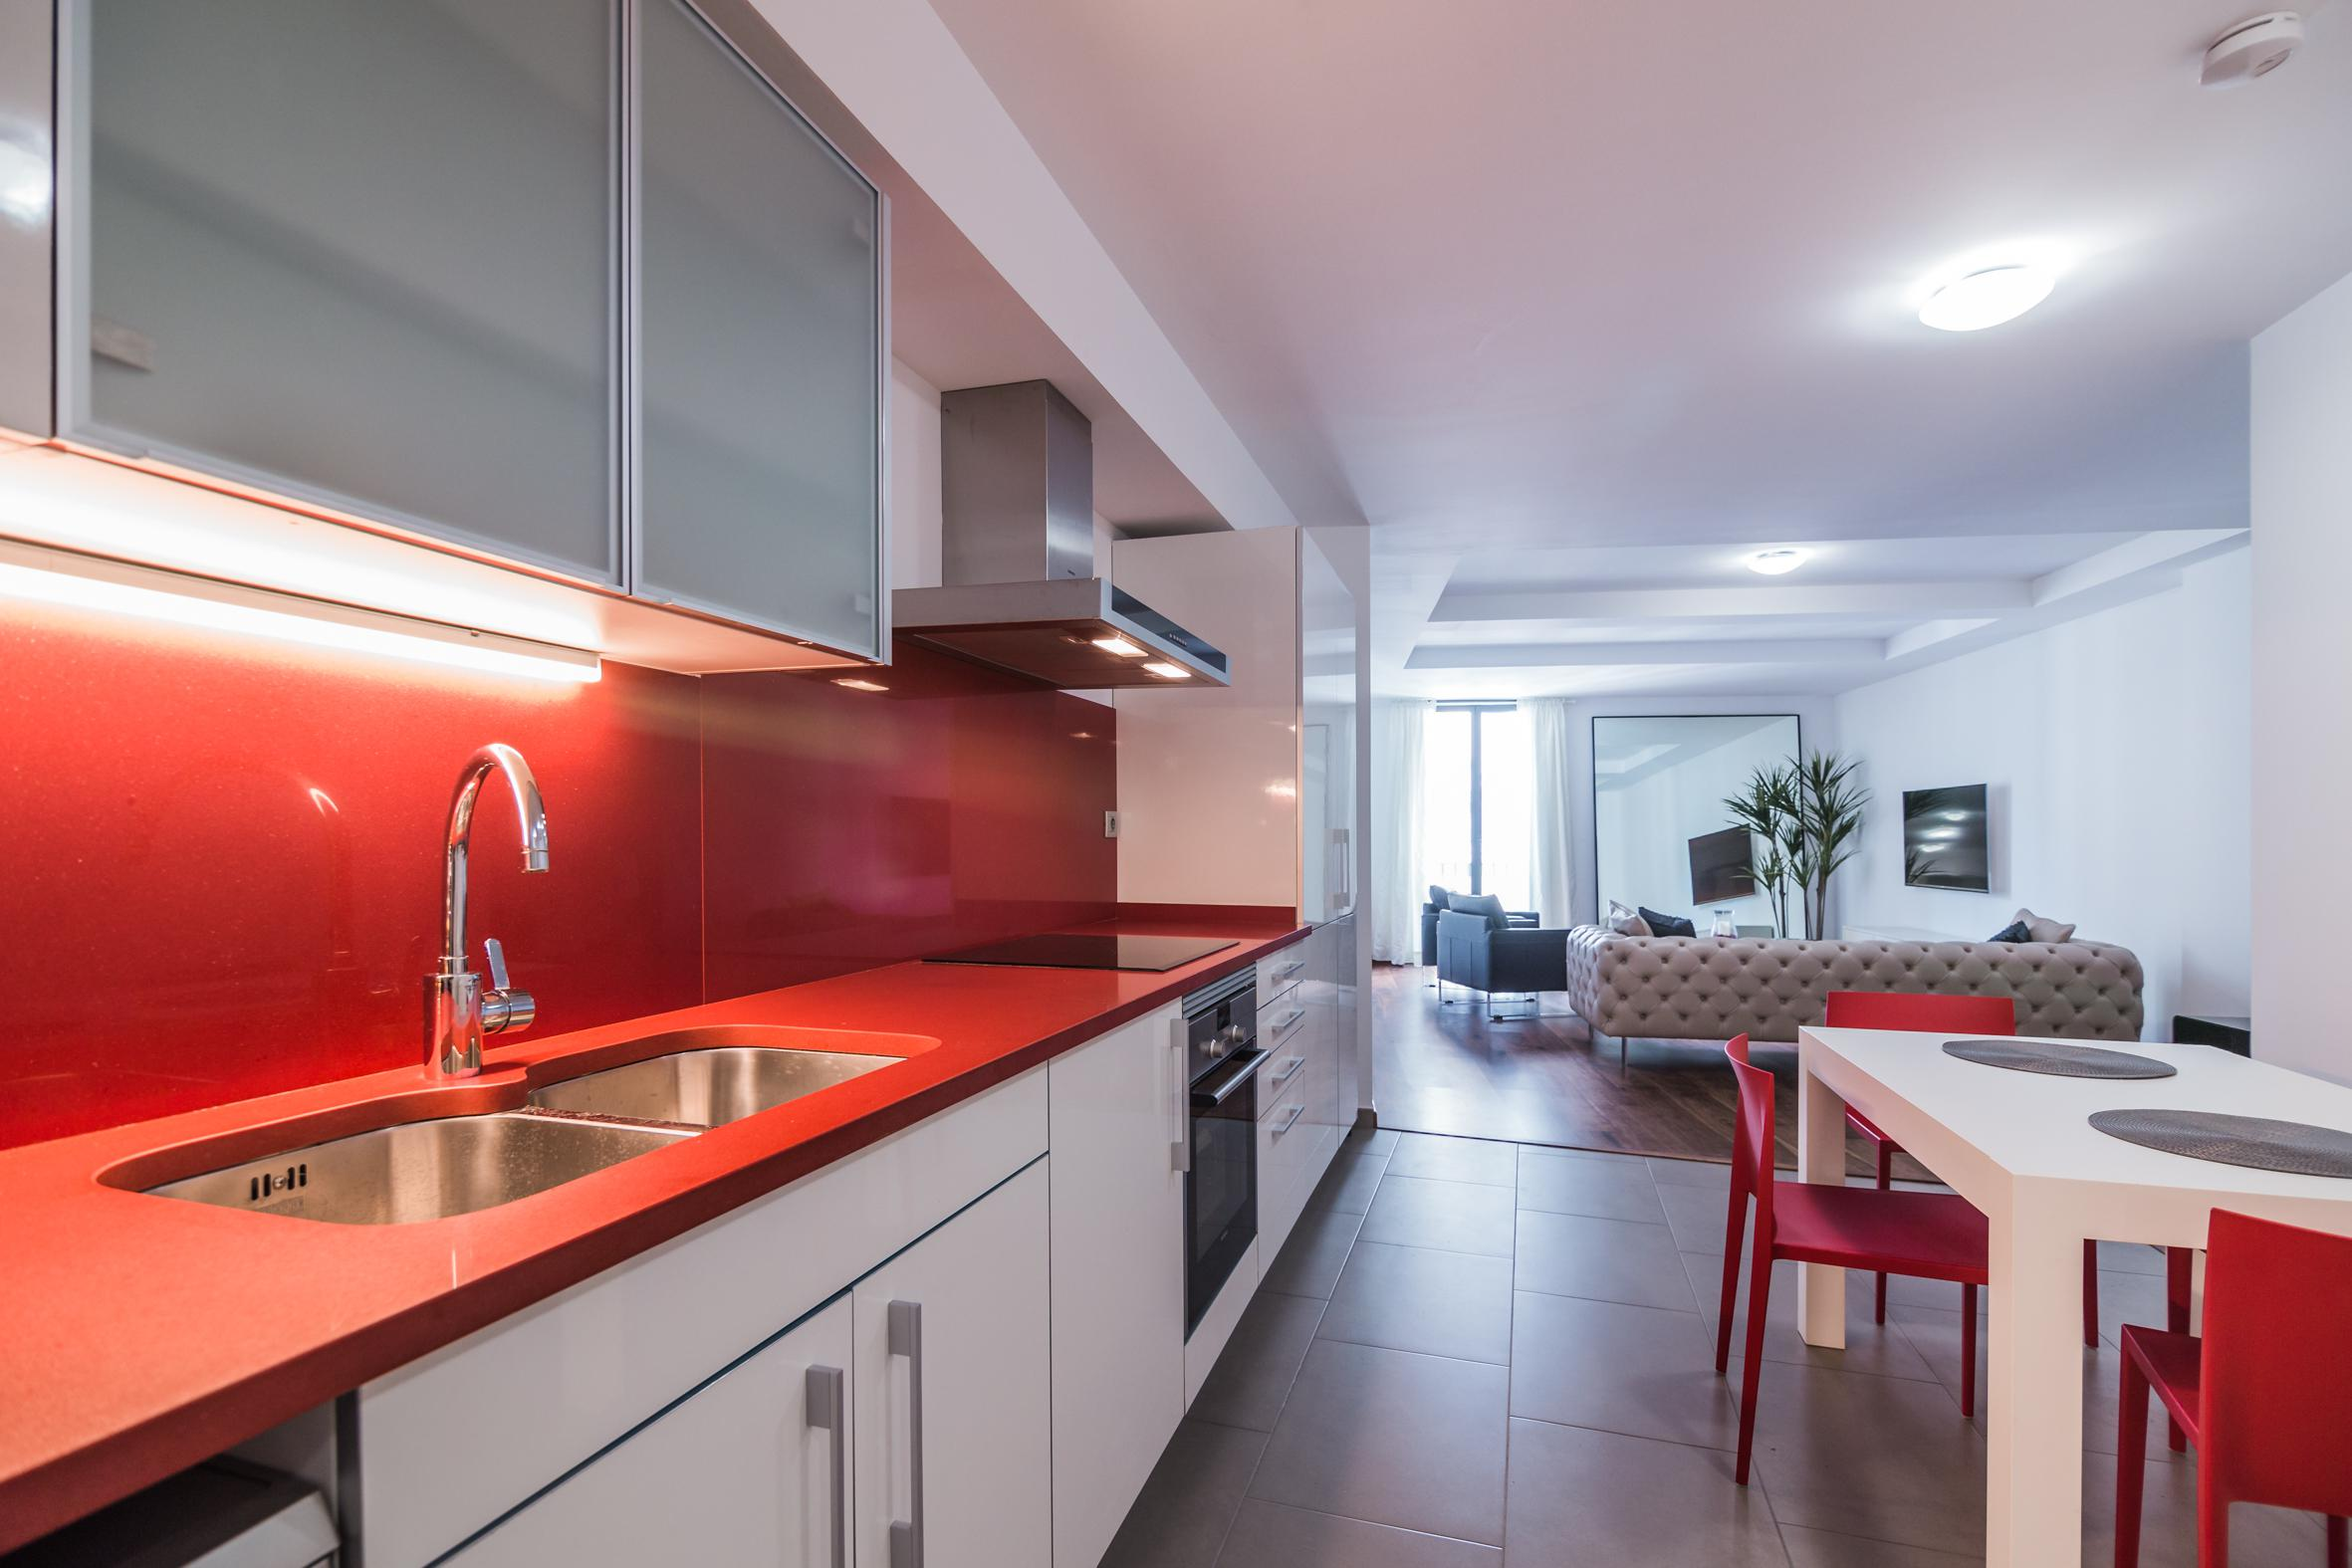 194056 Flat for sale in Ciutat Vella, Barri Gótic 10